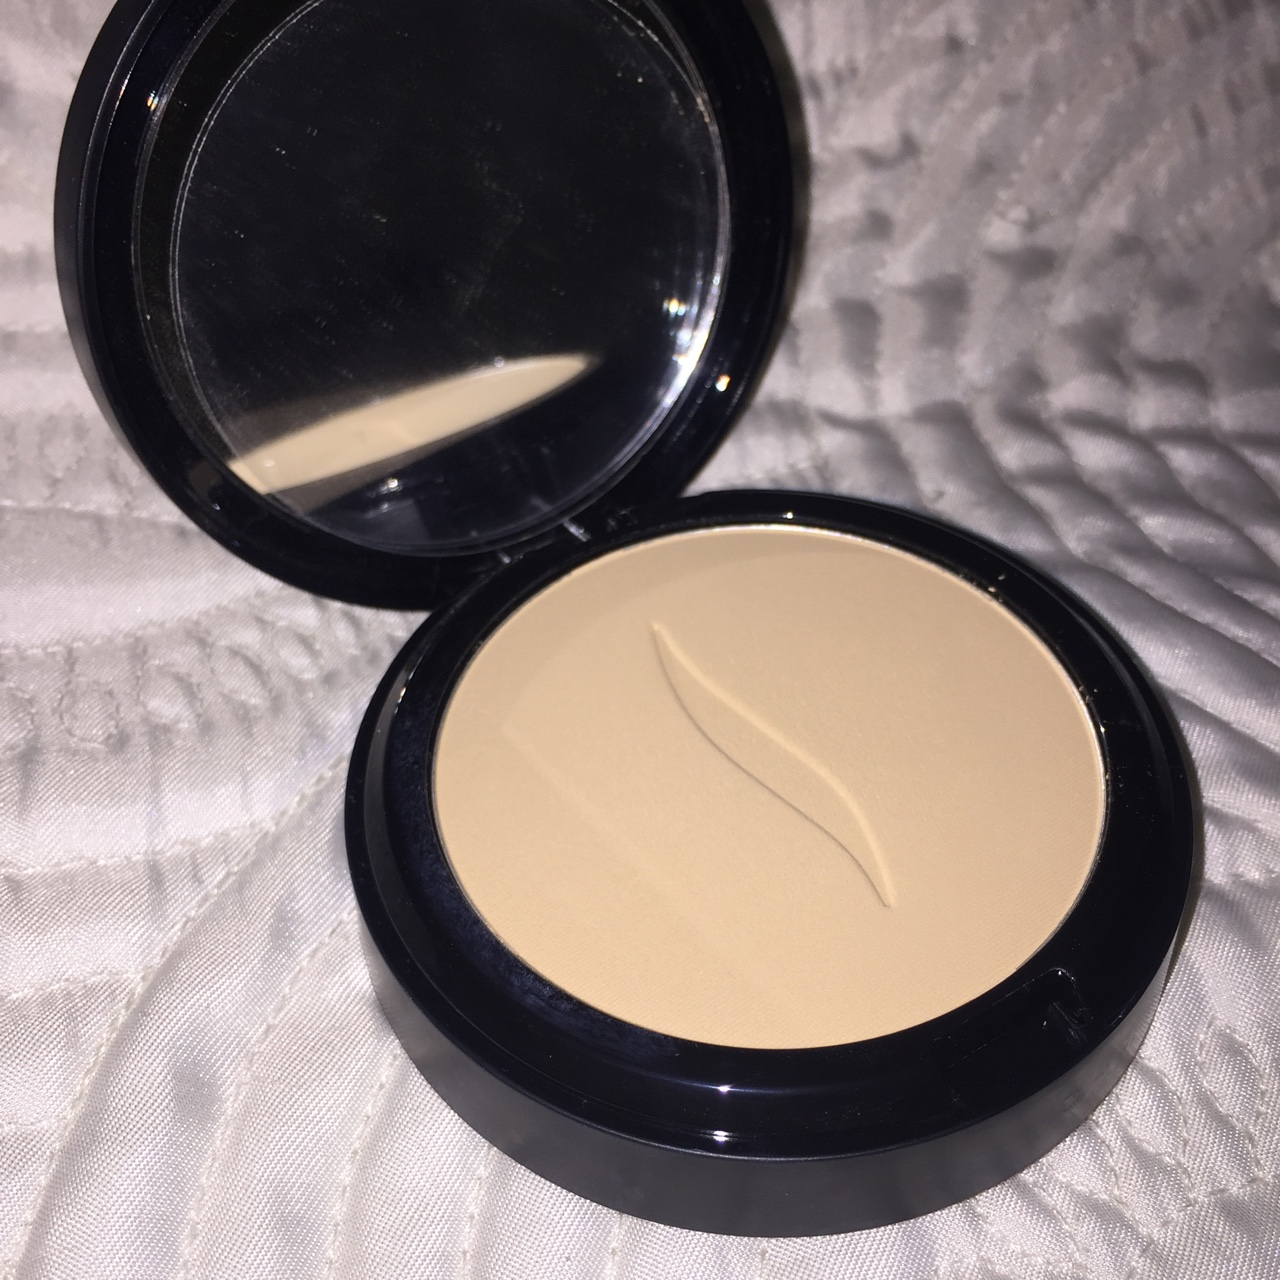 Sephora Matte Perfection Powder Foundation Used Depop